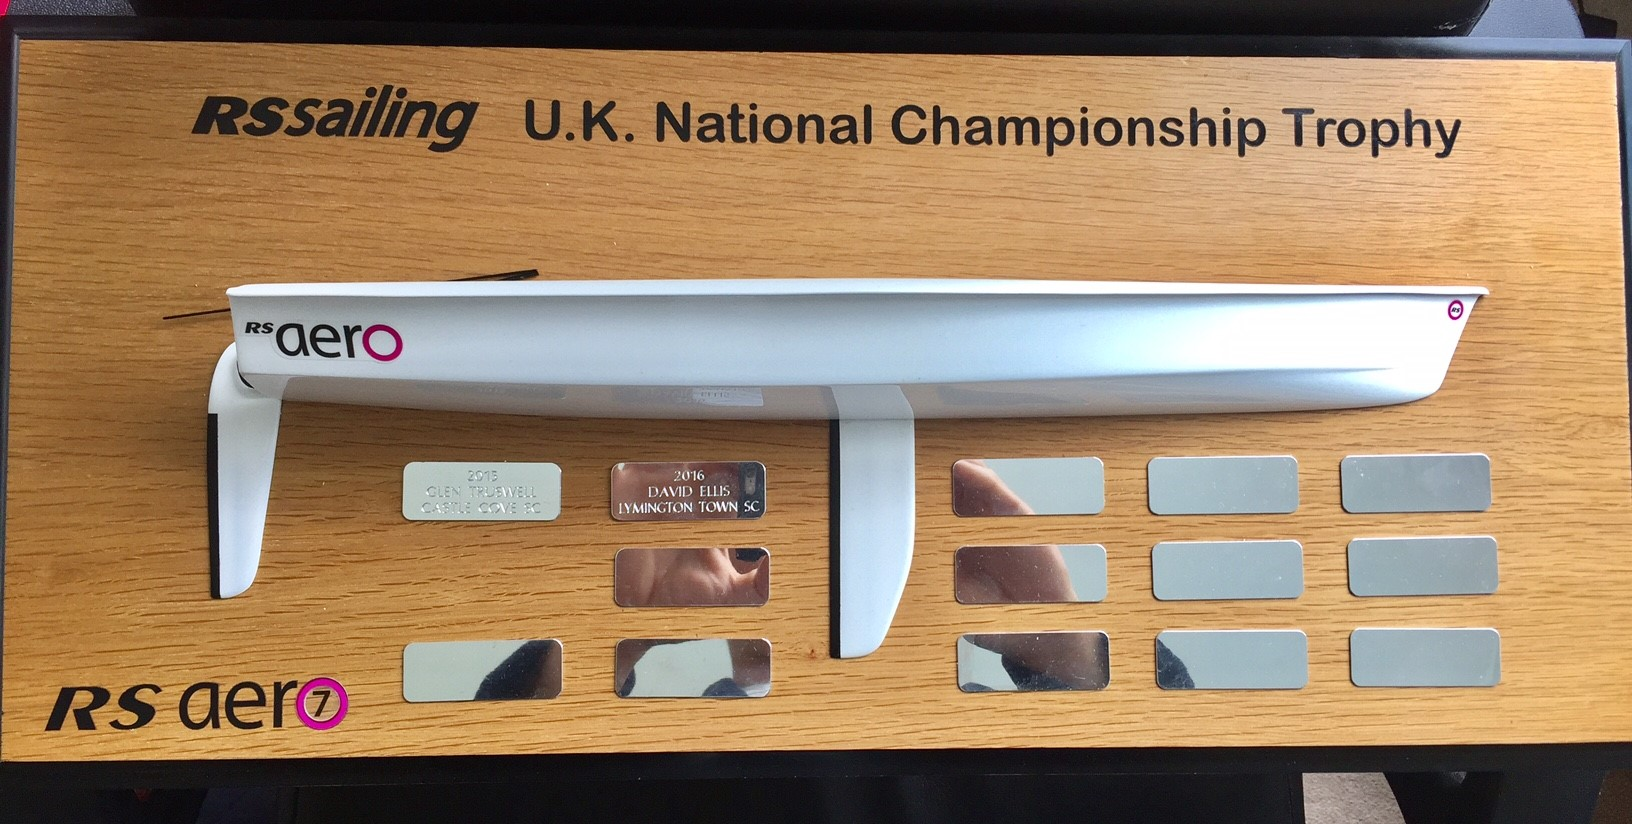 Awesome to have won this great trophy!